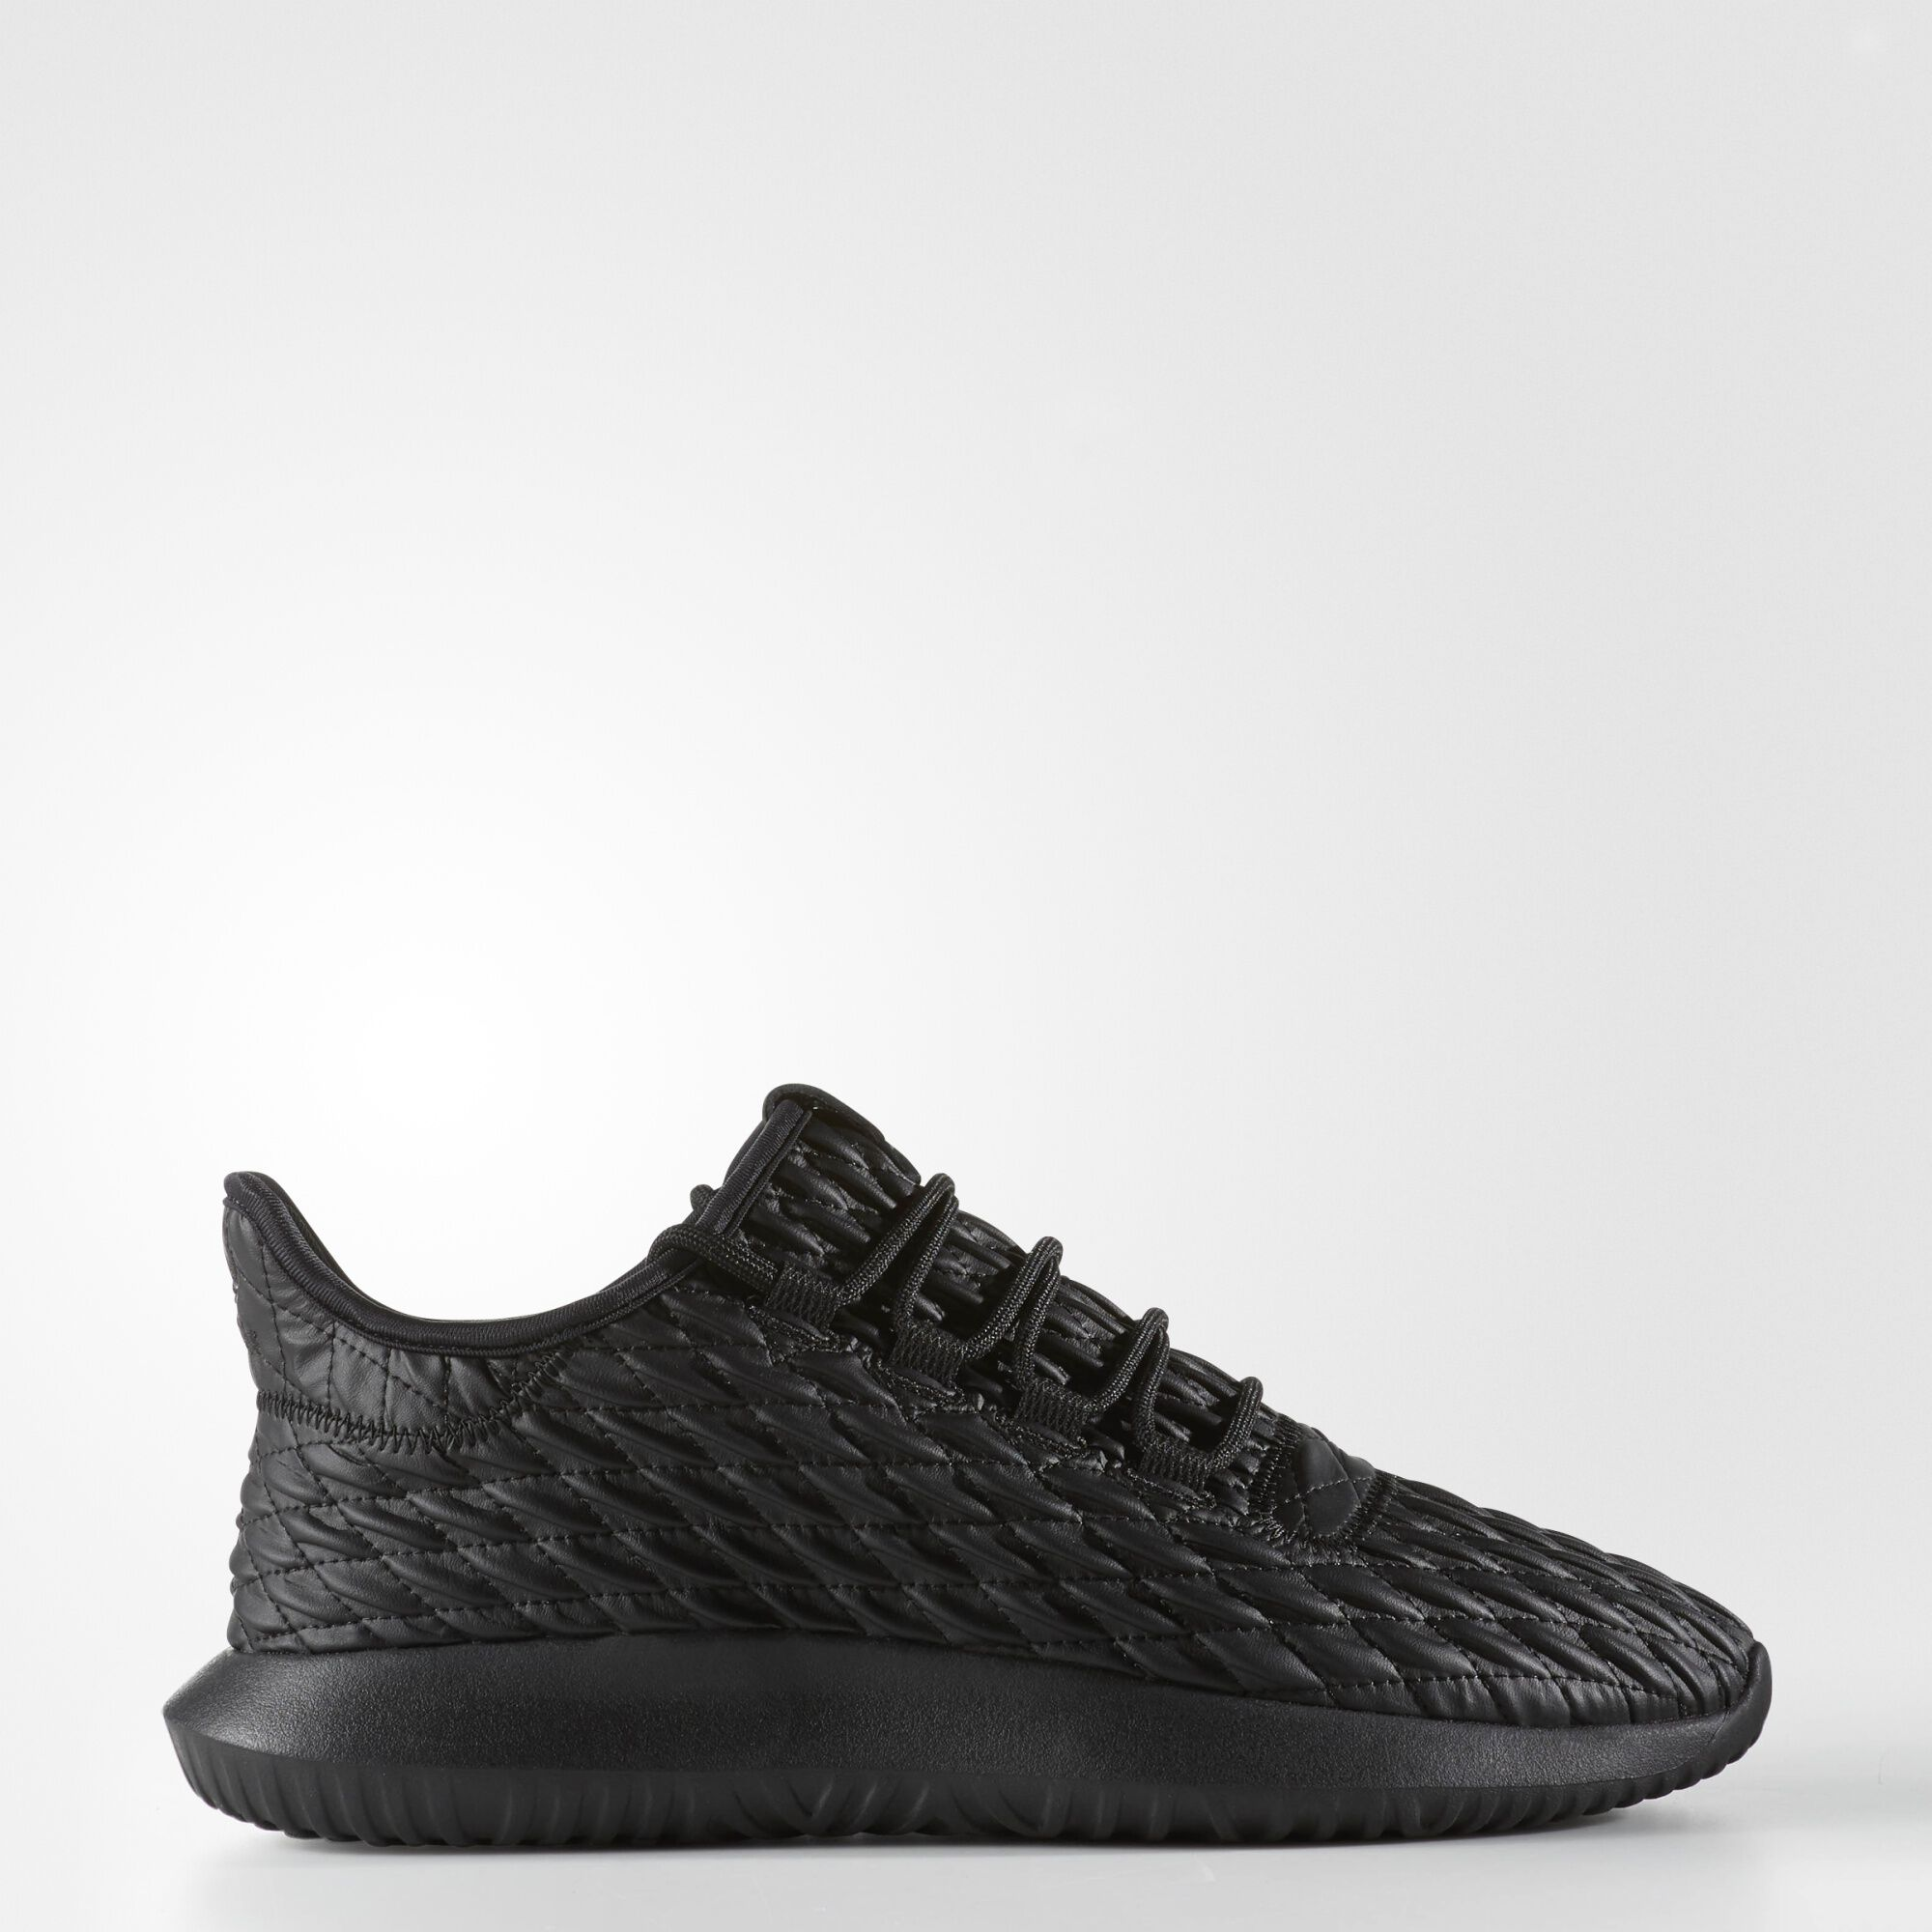 Adidas BB 8888 Tubular Shadow Knit Low Infant Toddler Lifestyle